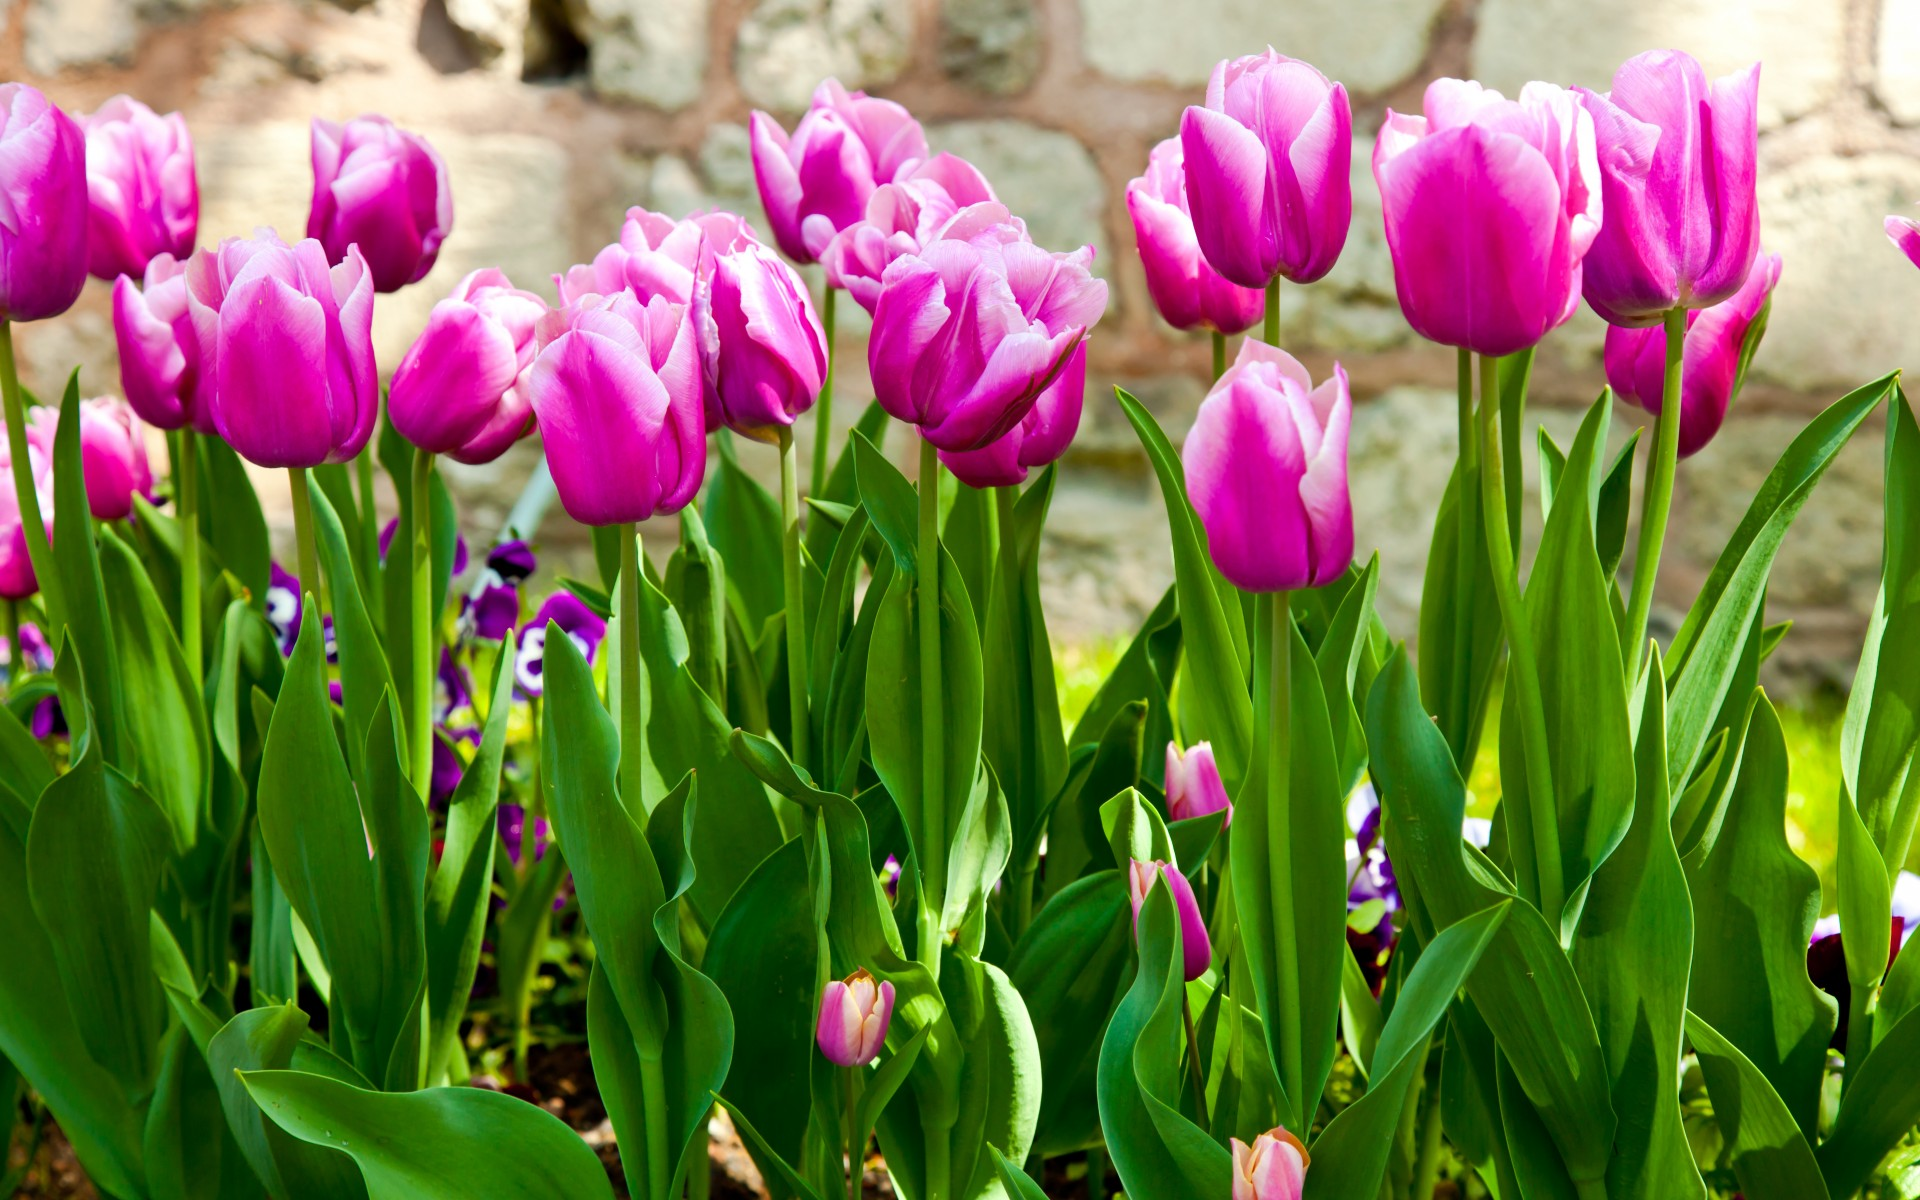 tulips purple stems leaves garden flowers spring wallpaper background